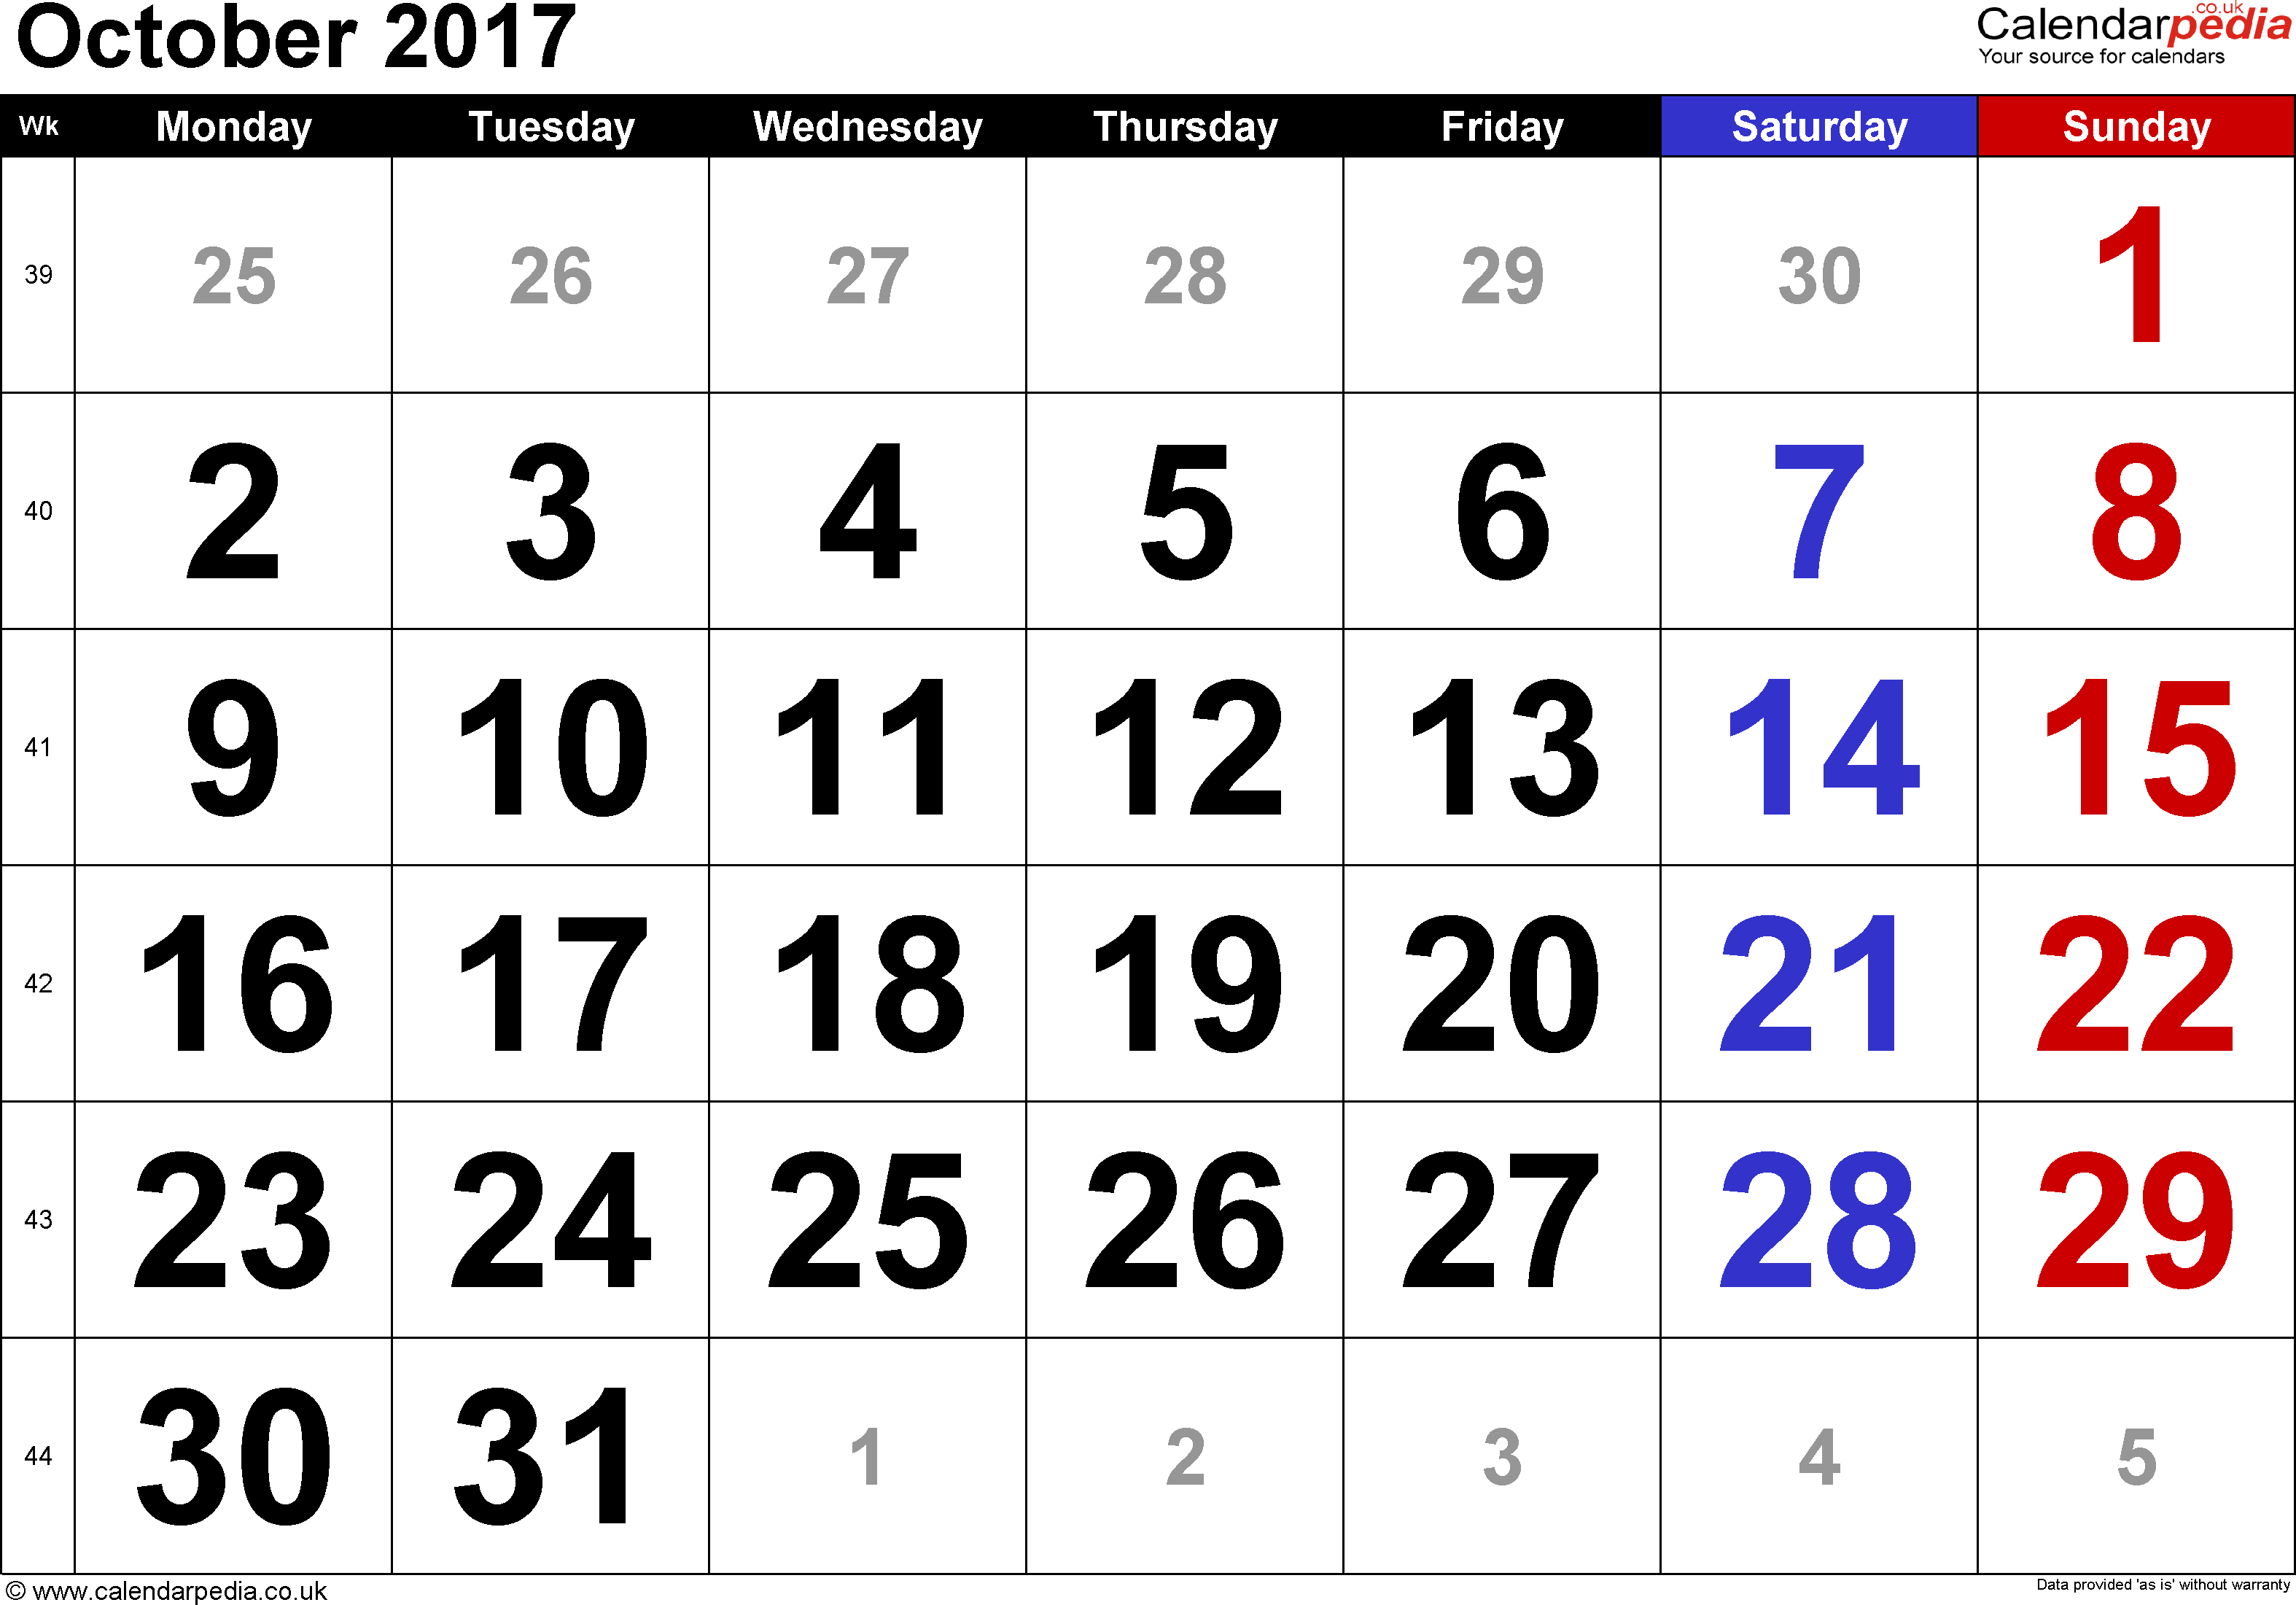 Calendar October 2017, landscape orientation, large numerals, 1 page, with UK bank holidays and week numbers